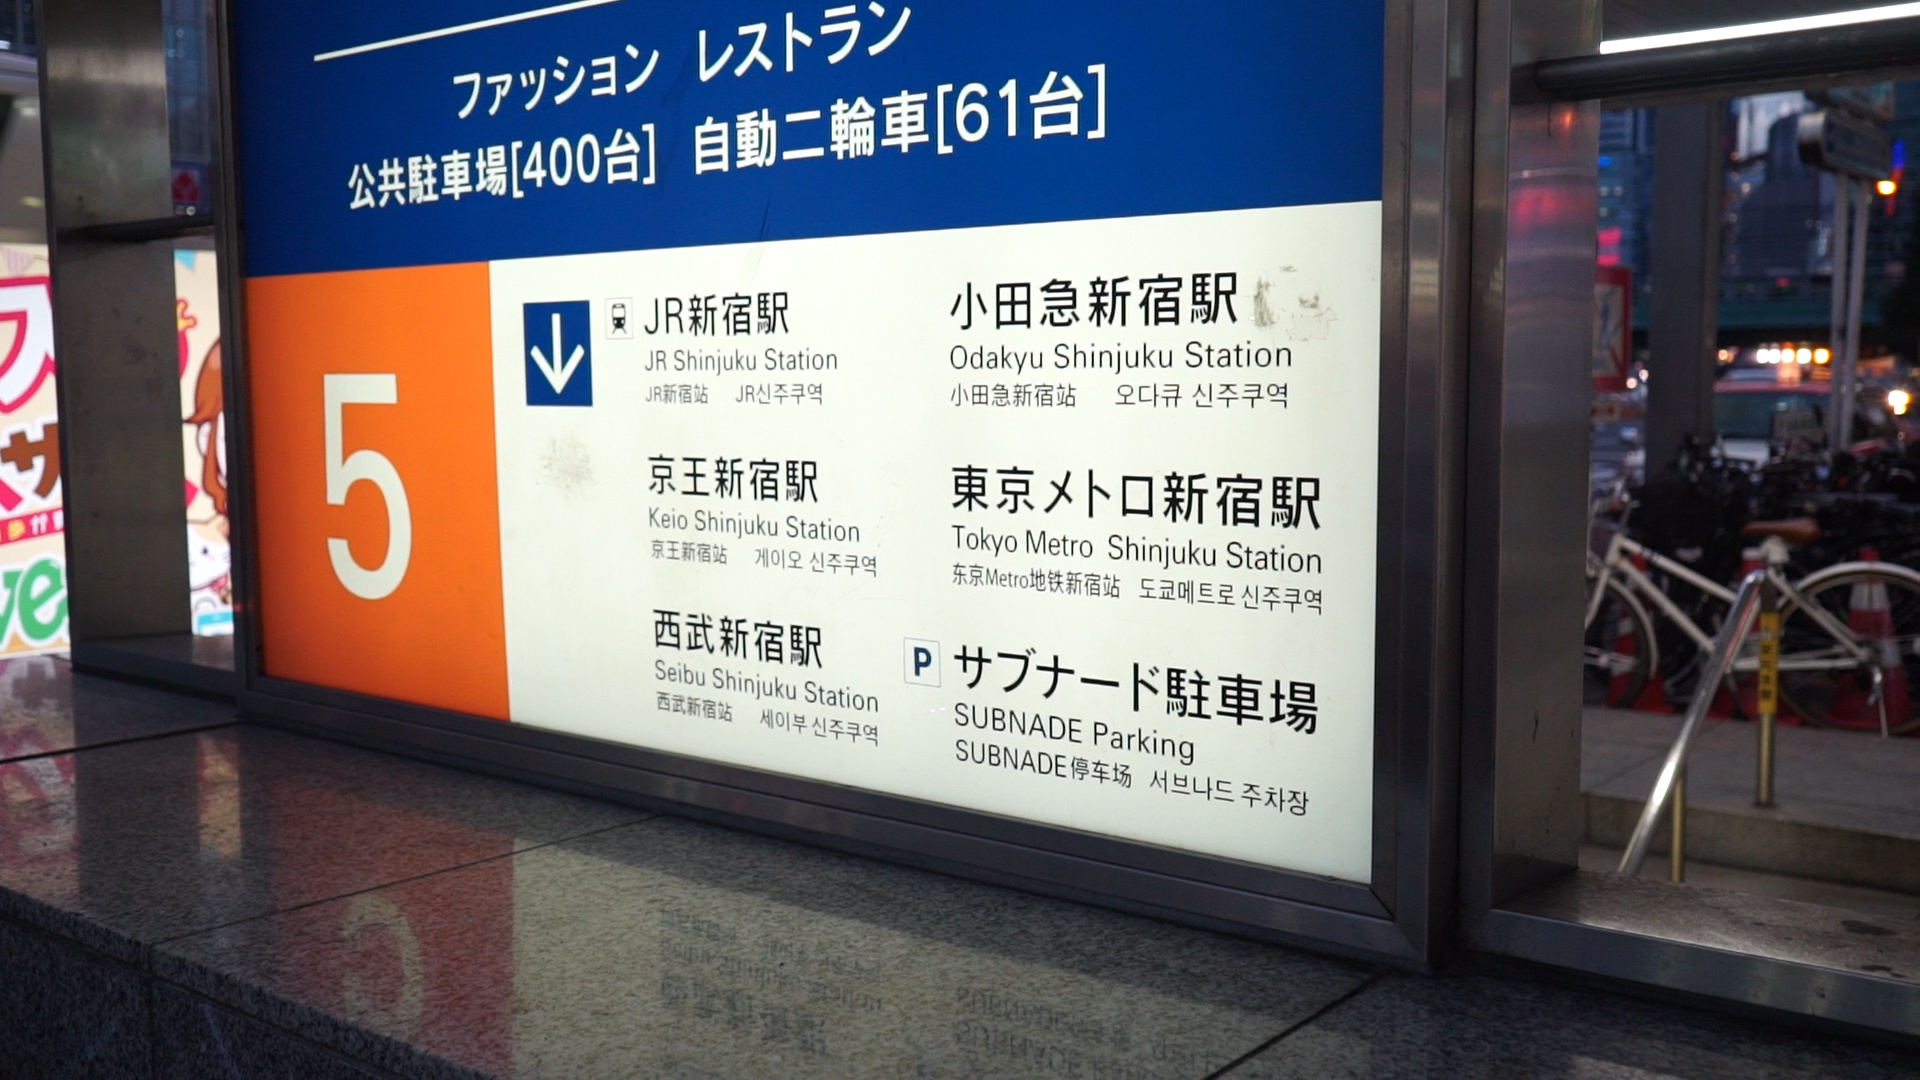 Japanese and English signage on the Metro, Tokyo